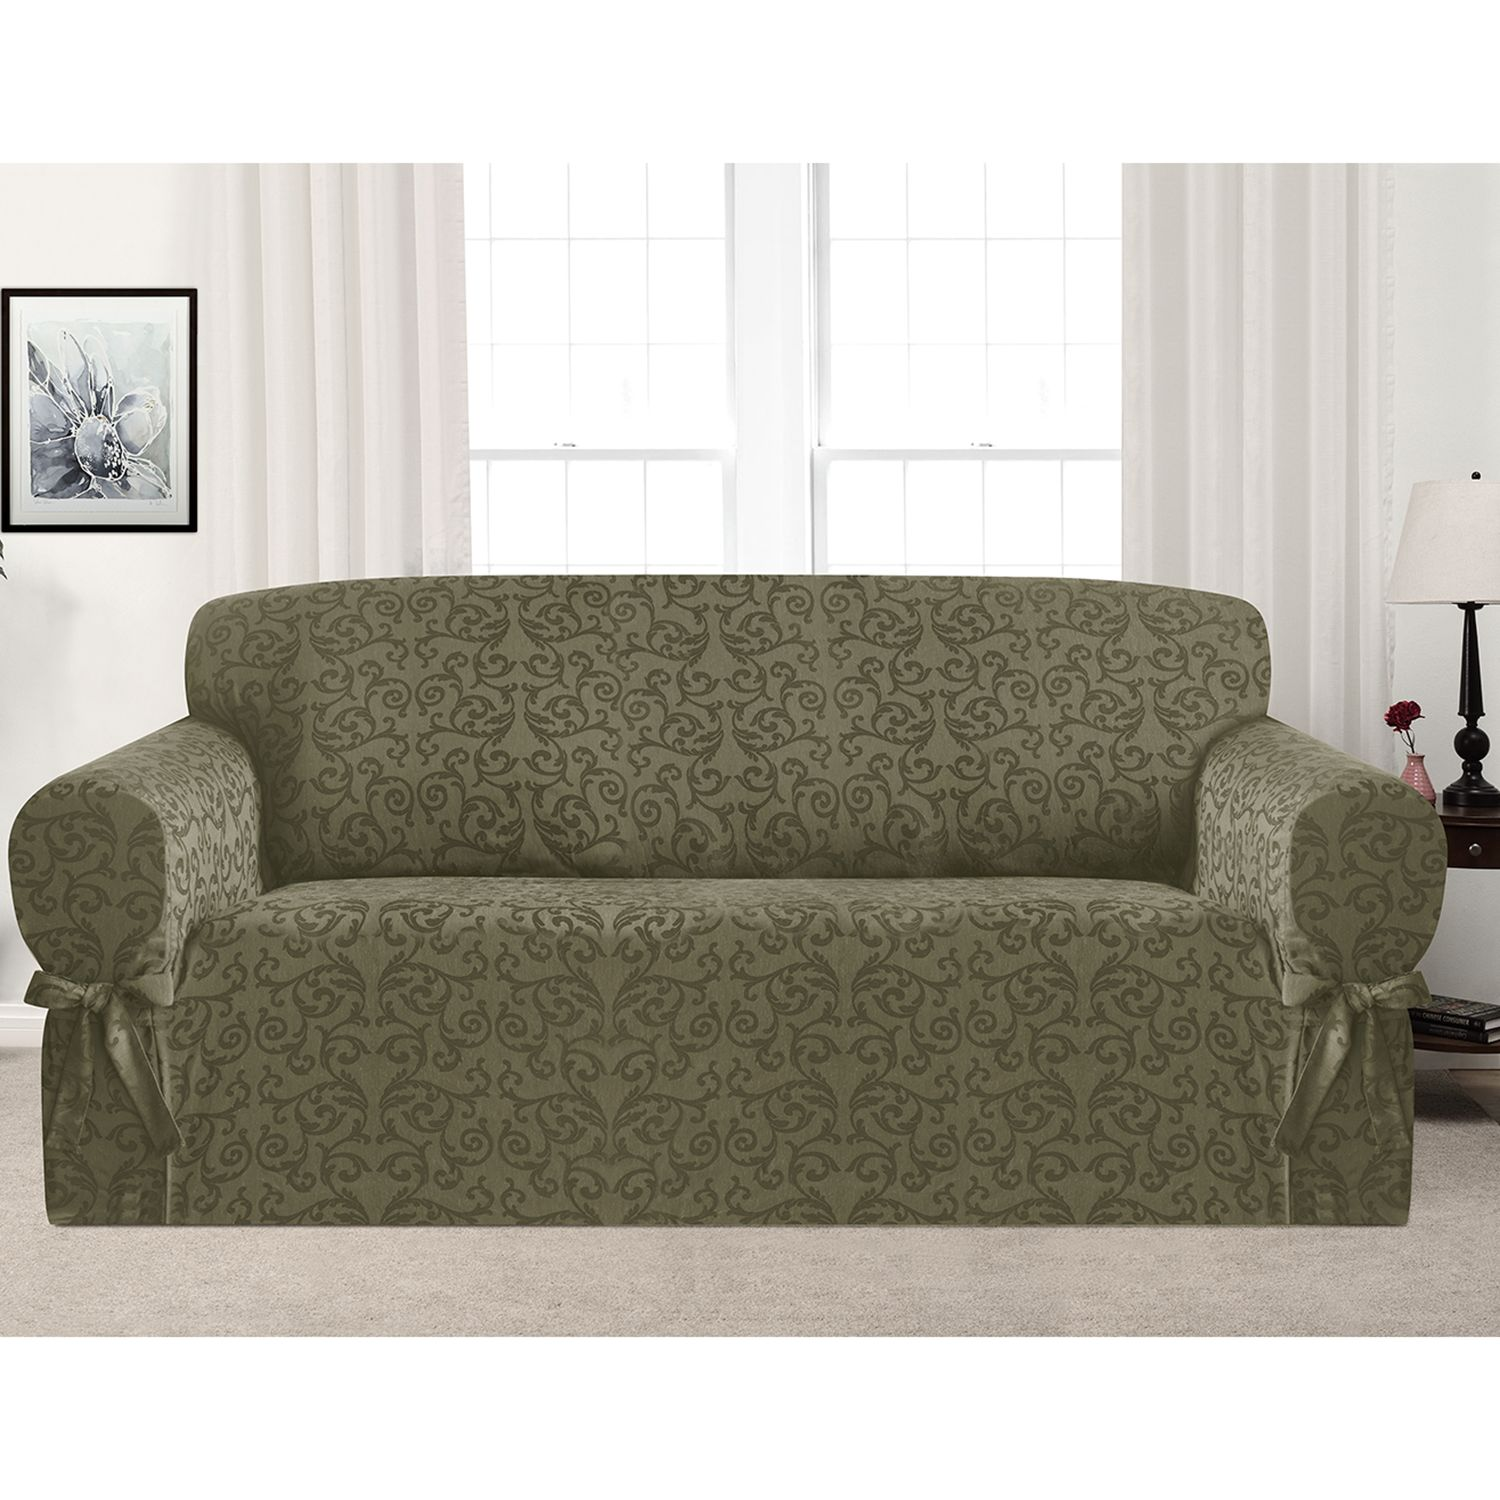 Beau Sale. $59.99. Regular. $119.99. Kathy Ireland Americana Sofa Slipcover